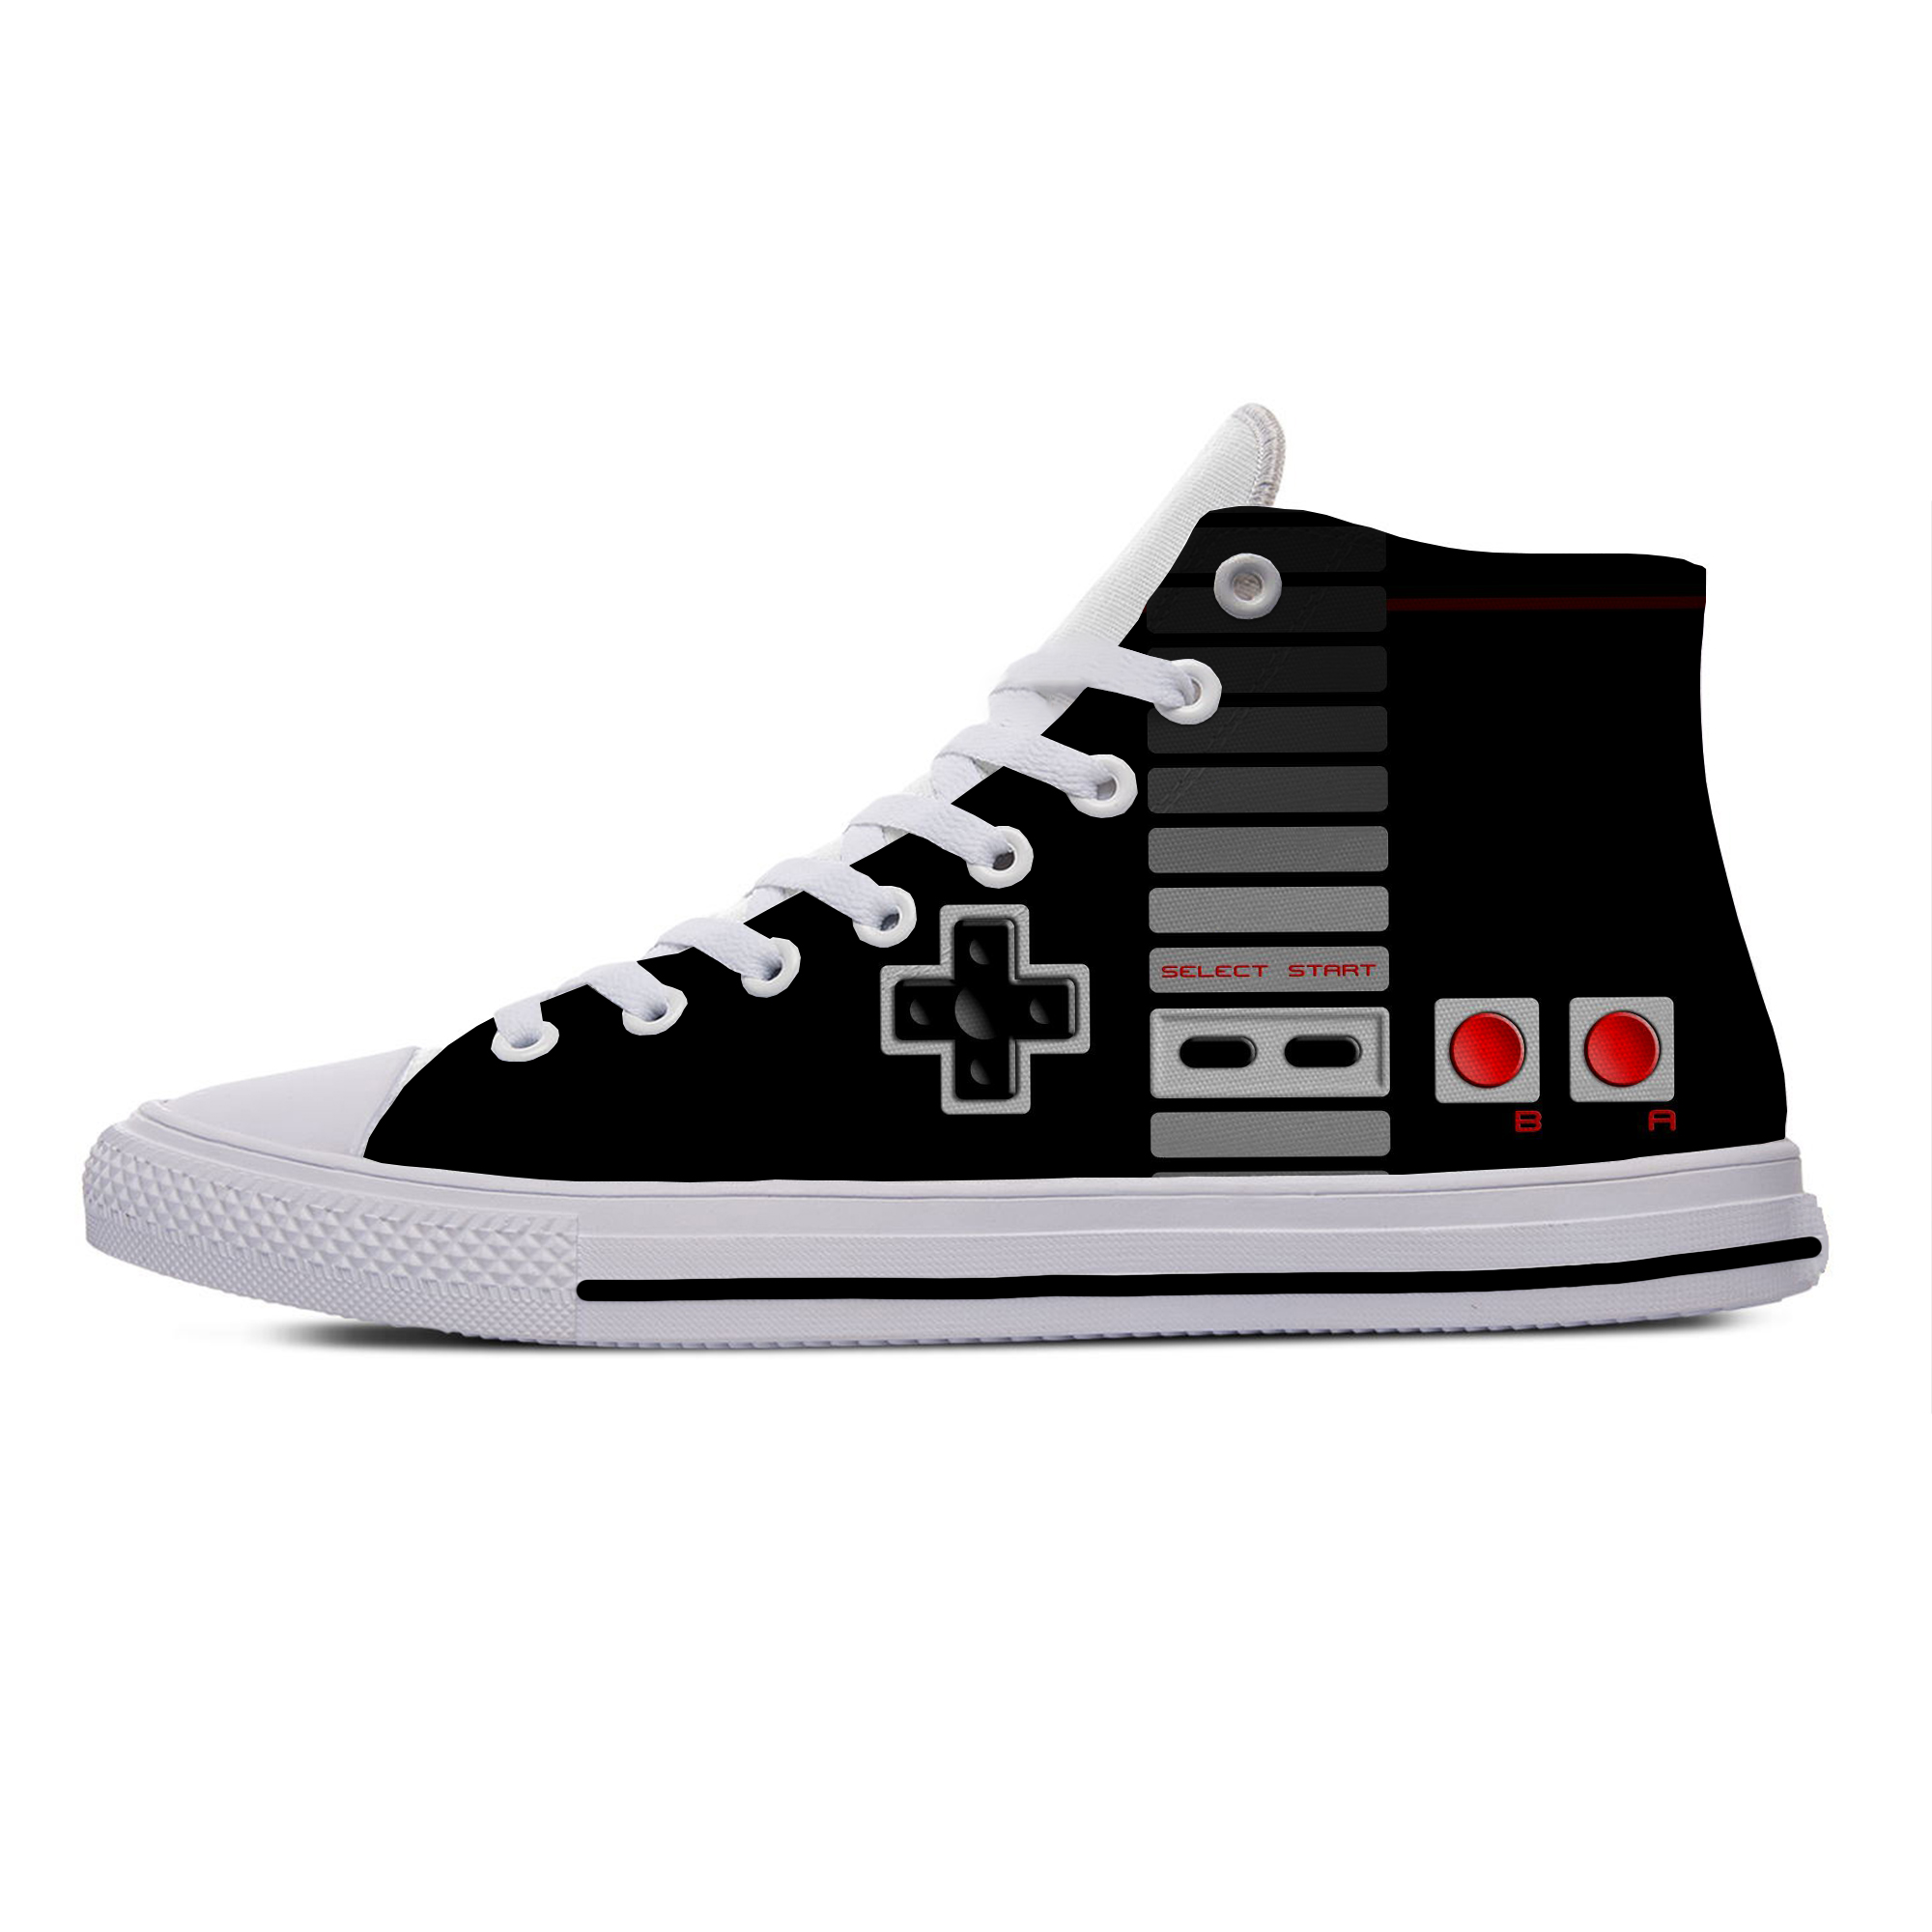 Classic Controller Video Game Console Gamer Cool Casual Canvas Shoes High Top Lightweight Breathable 3D Print Men Women Sneakers